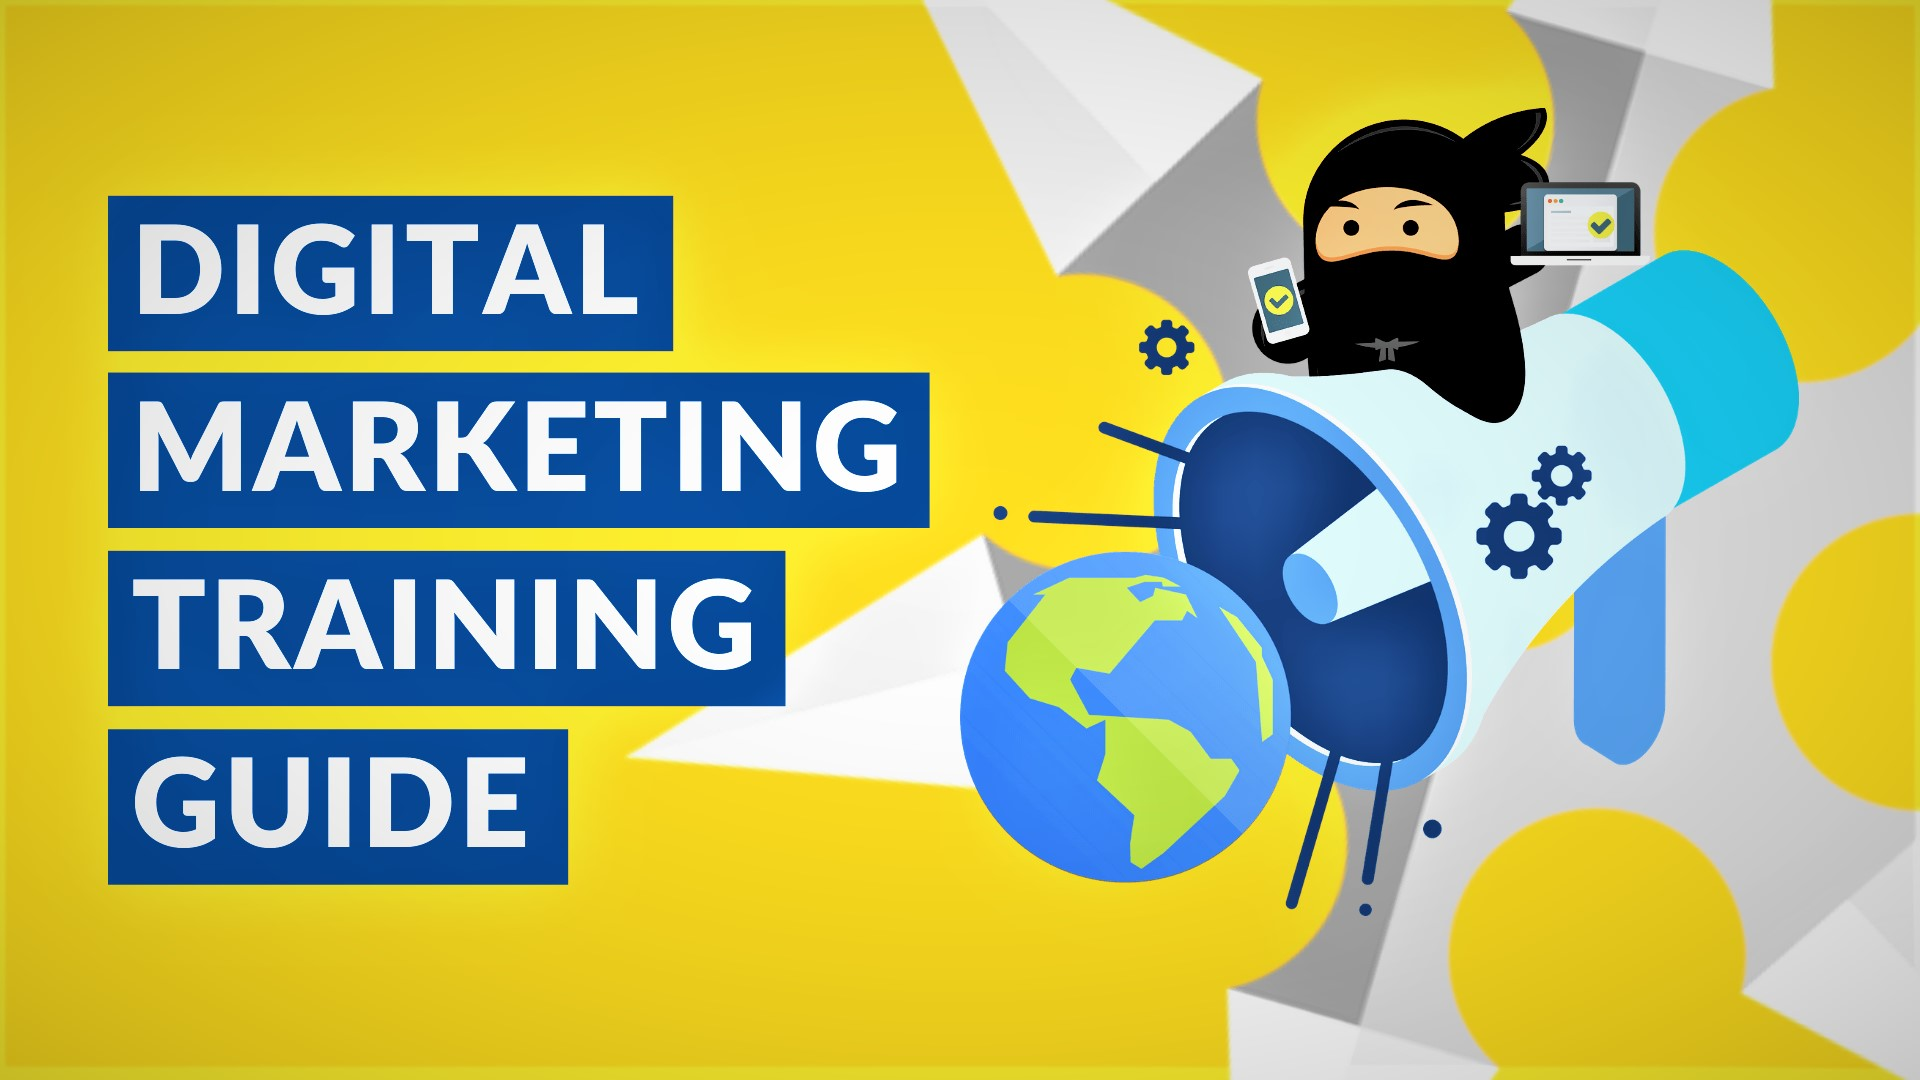 Digital marketing course in Mohali digital marketing course in mohali Digital marketing course in Mohali with certification & placement feature digital marketing training guides